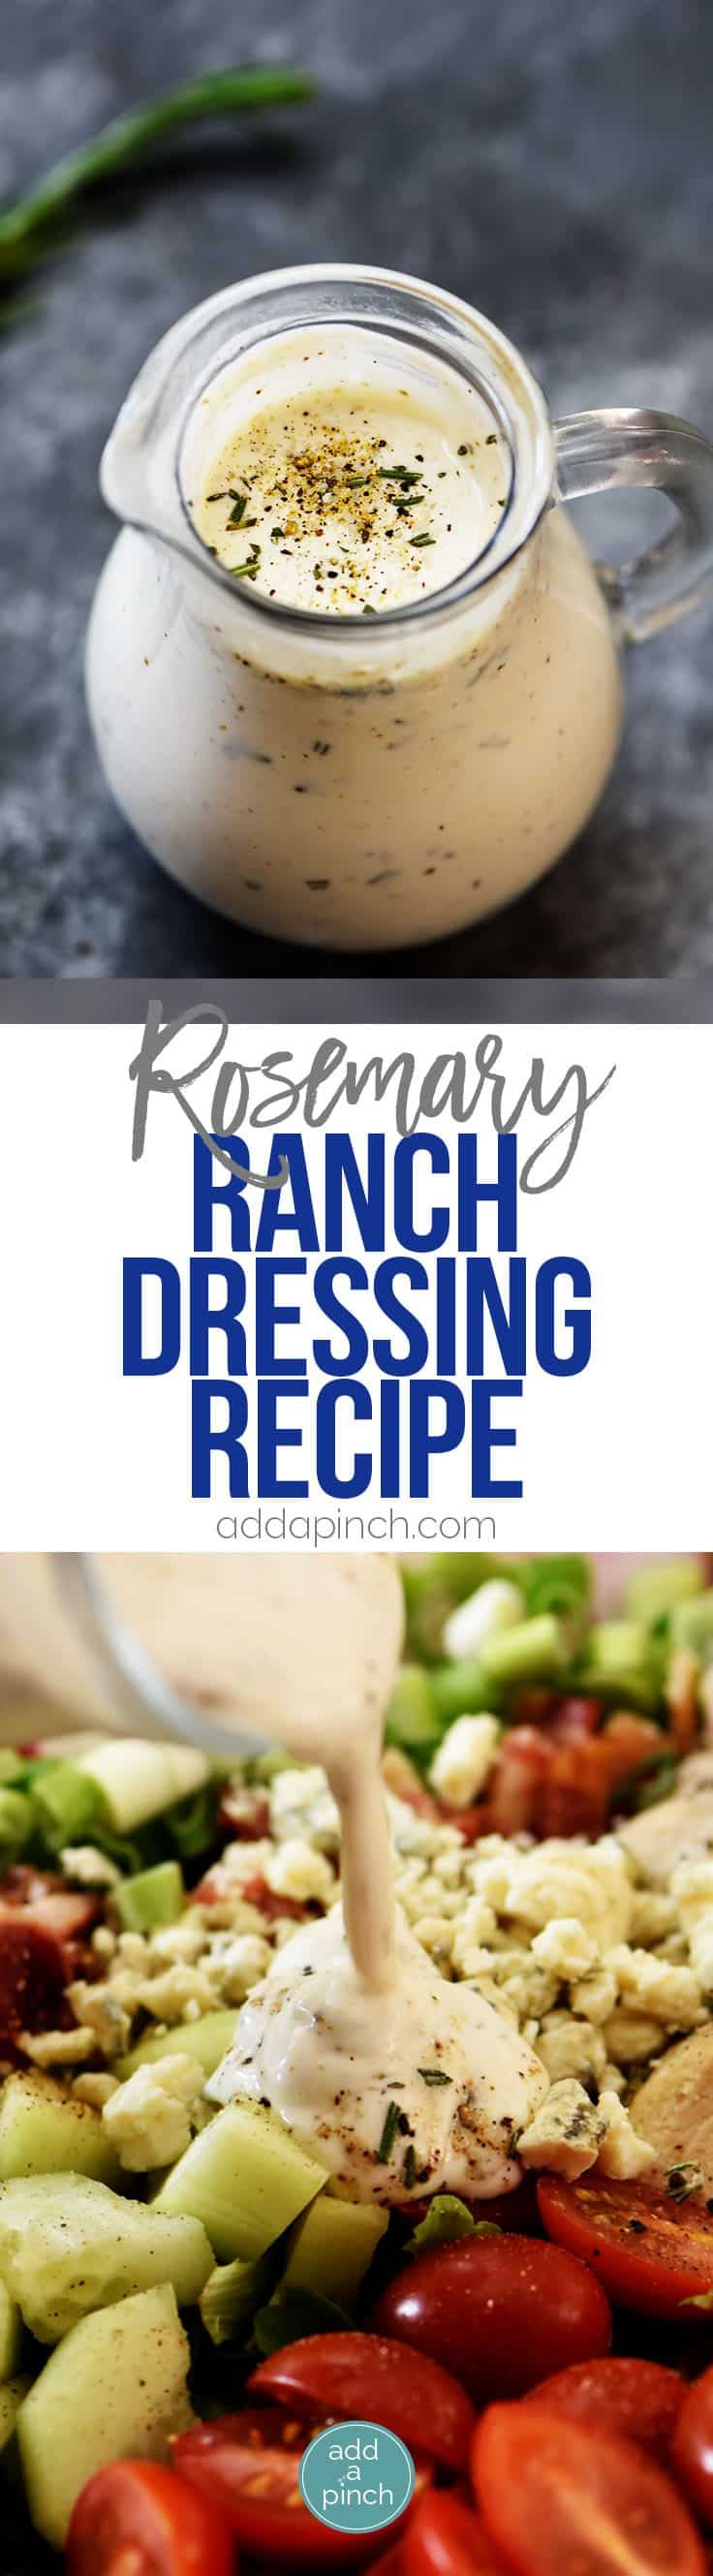 Rosemary Ranch Dressing Recipe - This simple ranch dressing is an update to the classic ranch dressing with fresh rosemary and spices and adds so much flavor to salads, chicken, and so many dishes!// addapinch.com